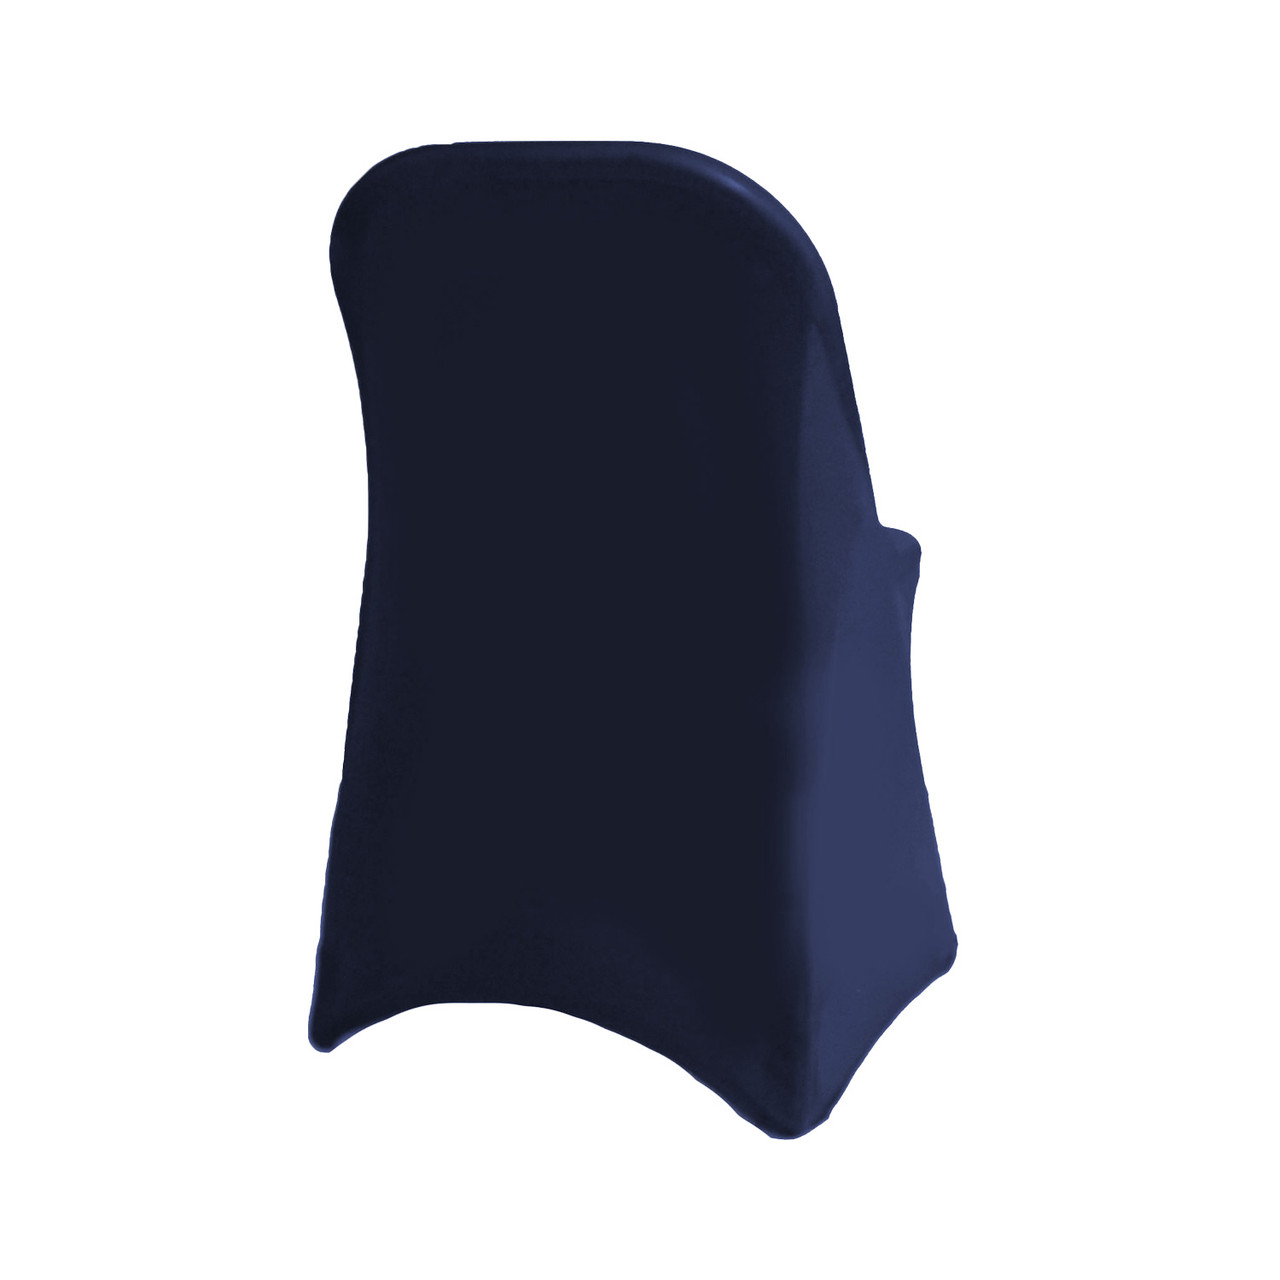 Stretch Spandex Folding Chair Cover Navy Blue Your Chair